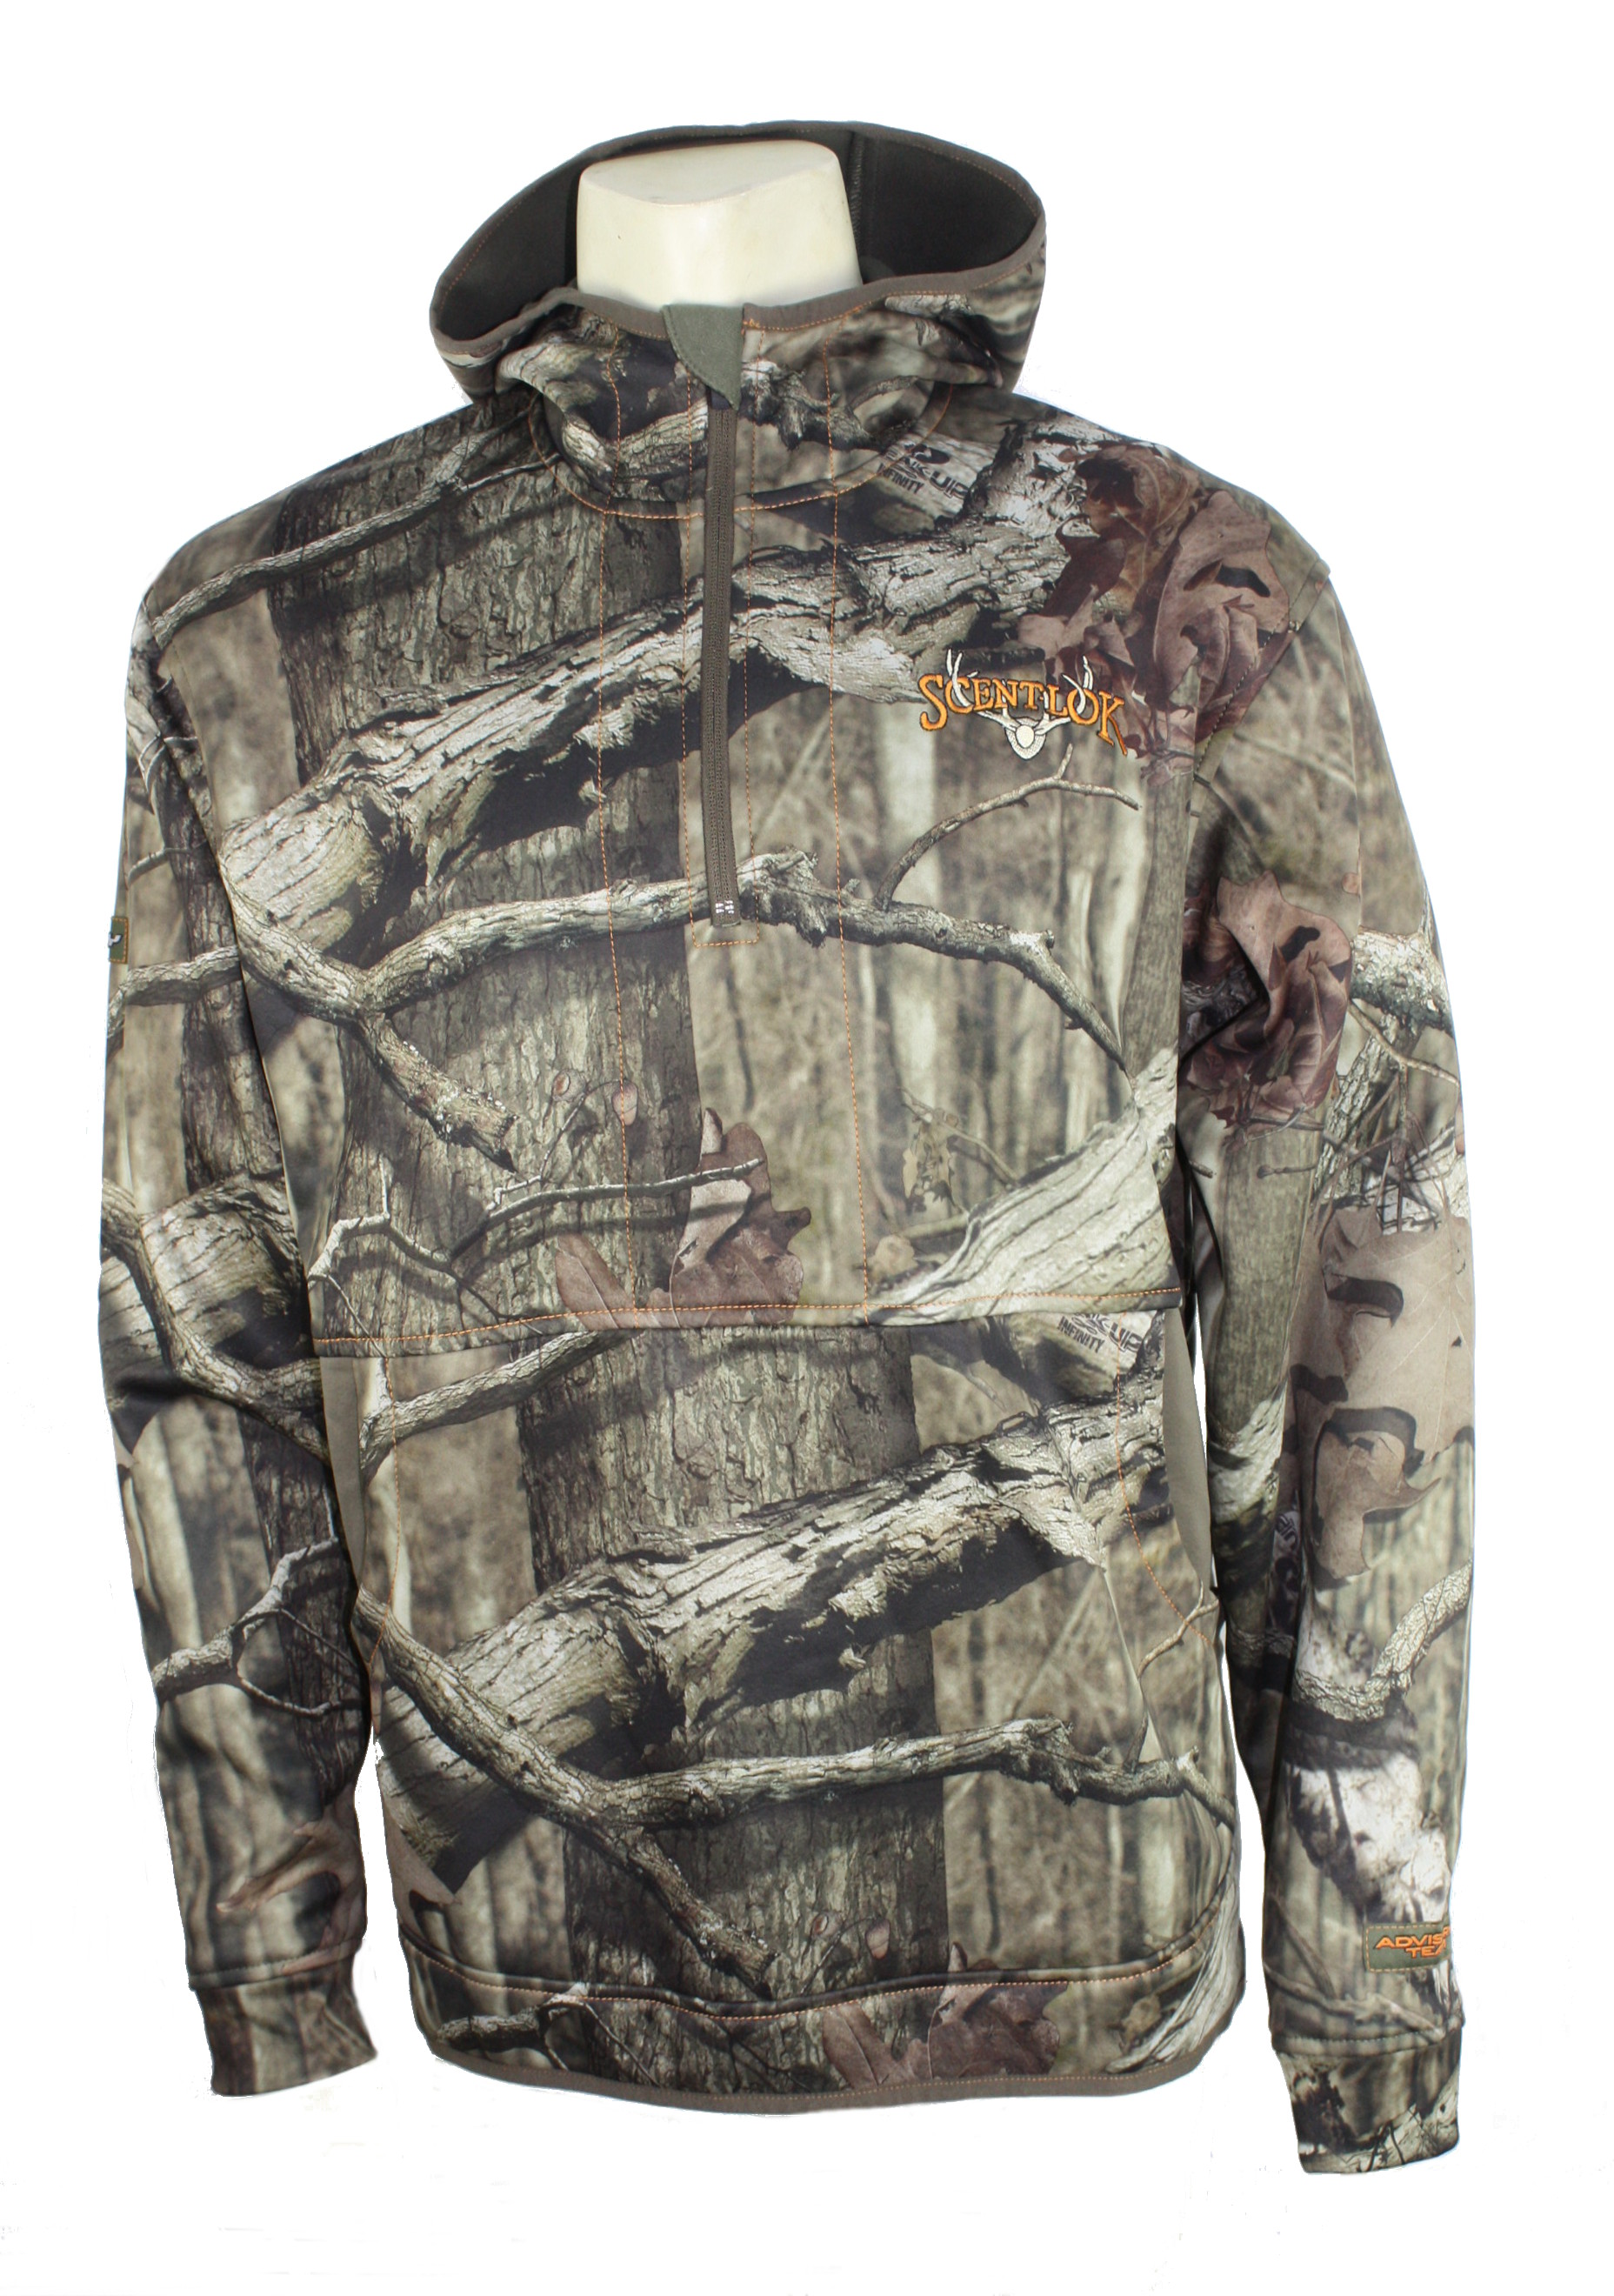 Scent-Lok Mens Hi-Tech Hunting Jacket by